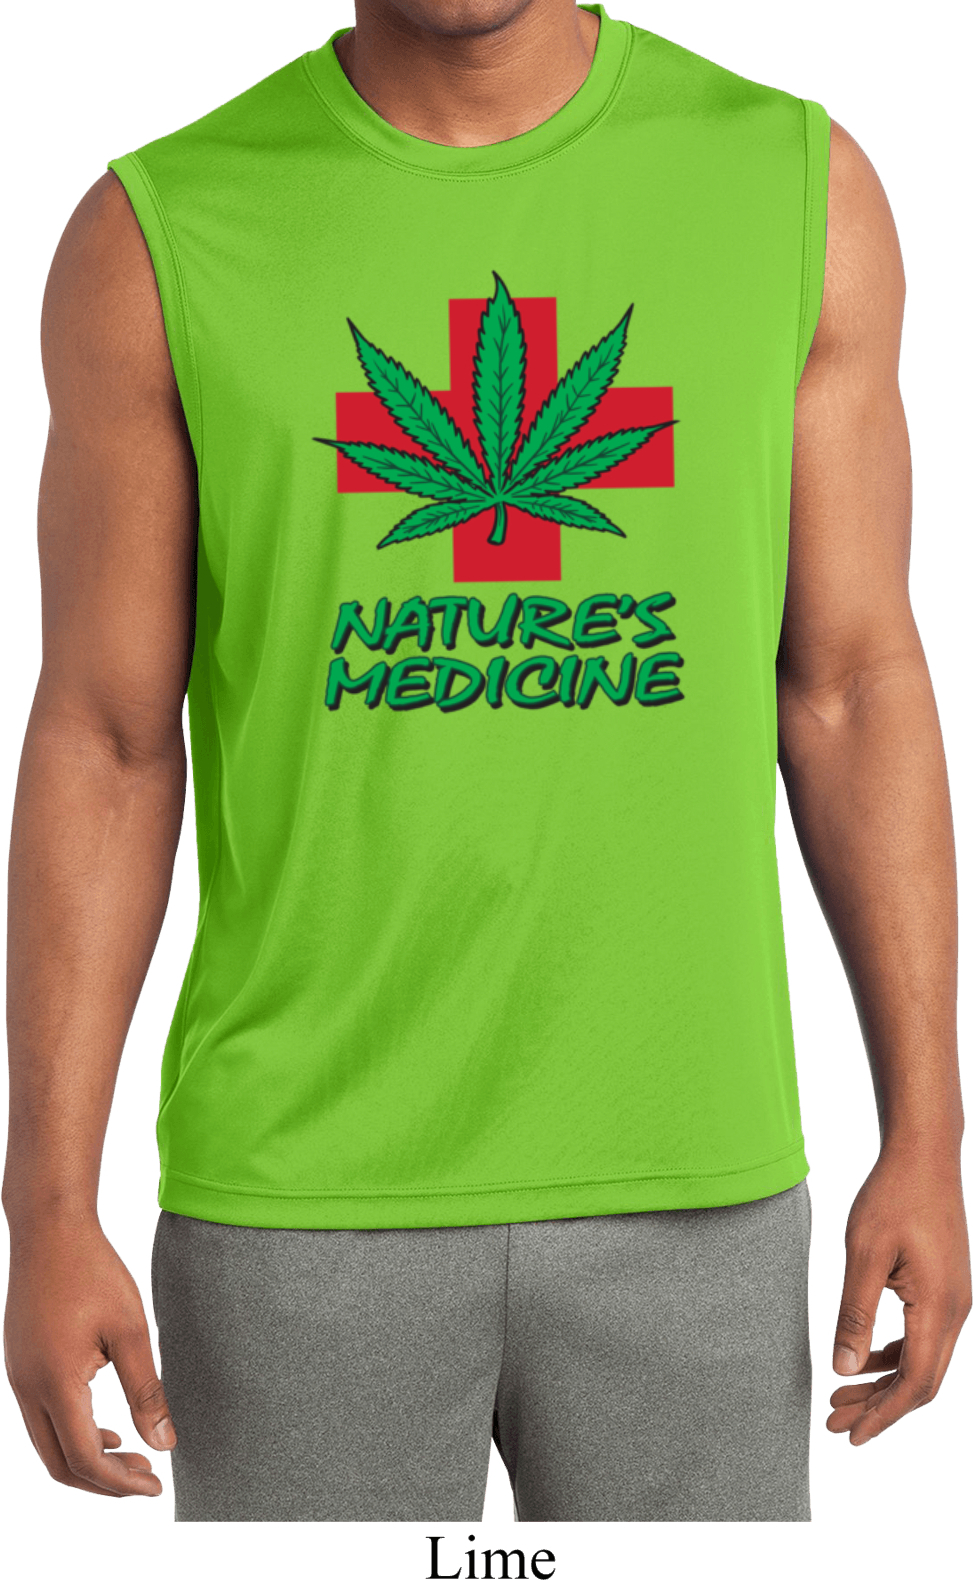 Mens shirt natures medicine sleeveless moisture wicking for Sweat wicking t shirts